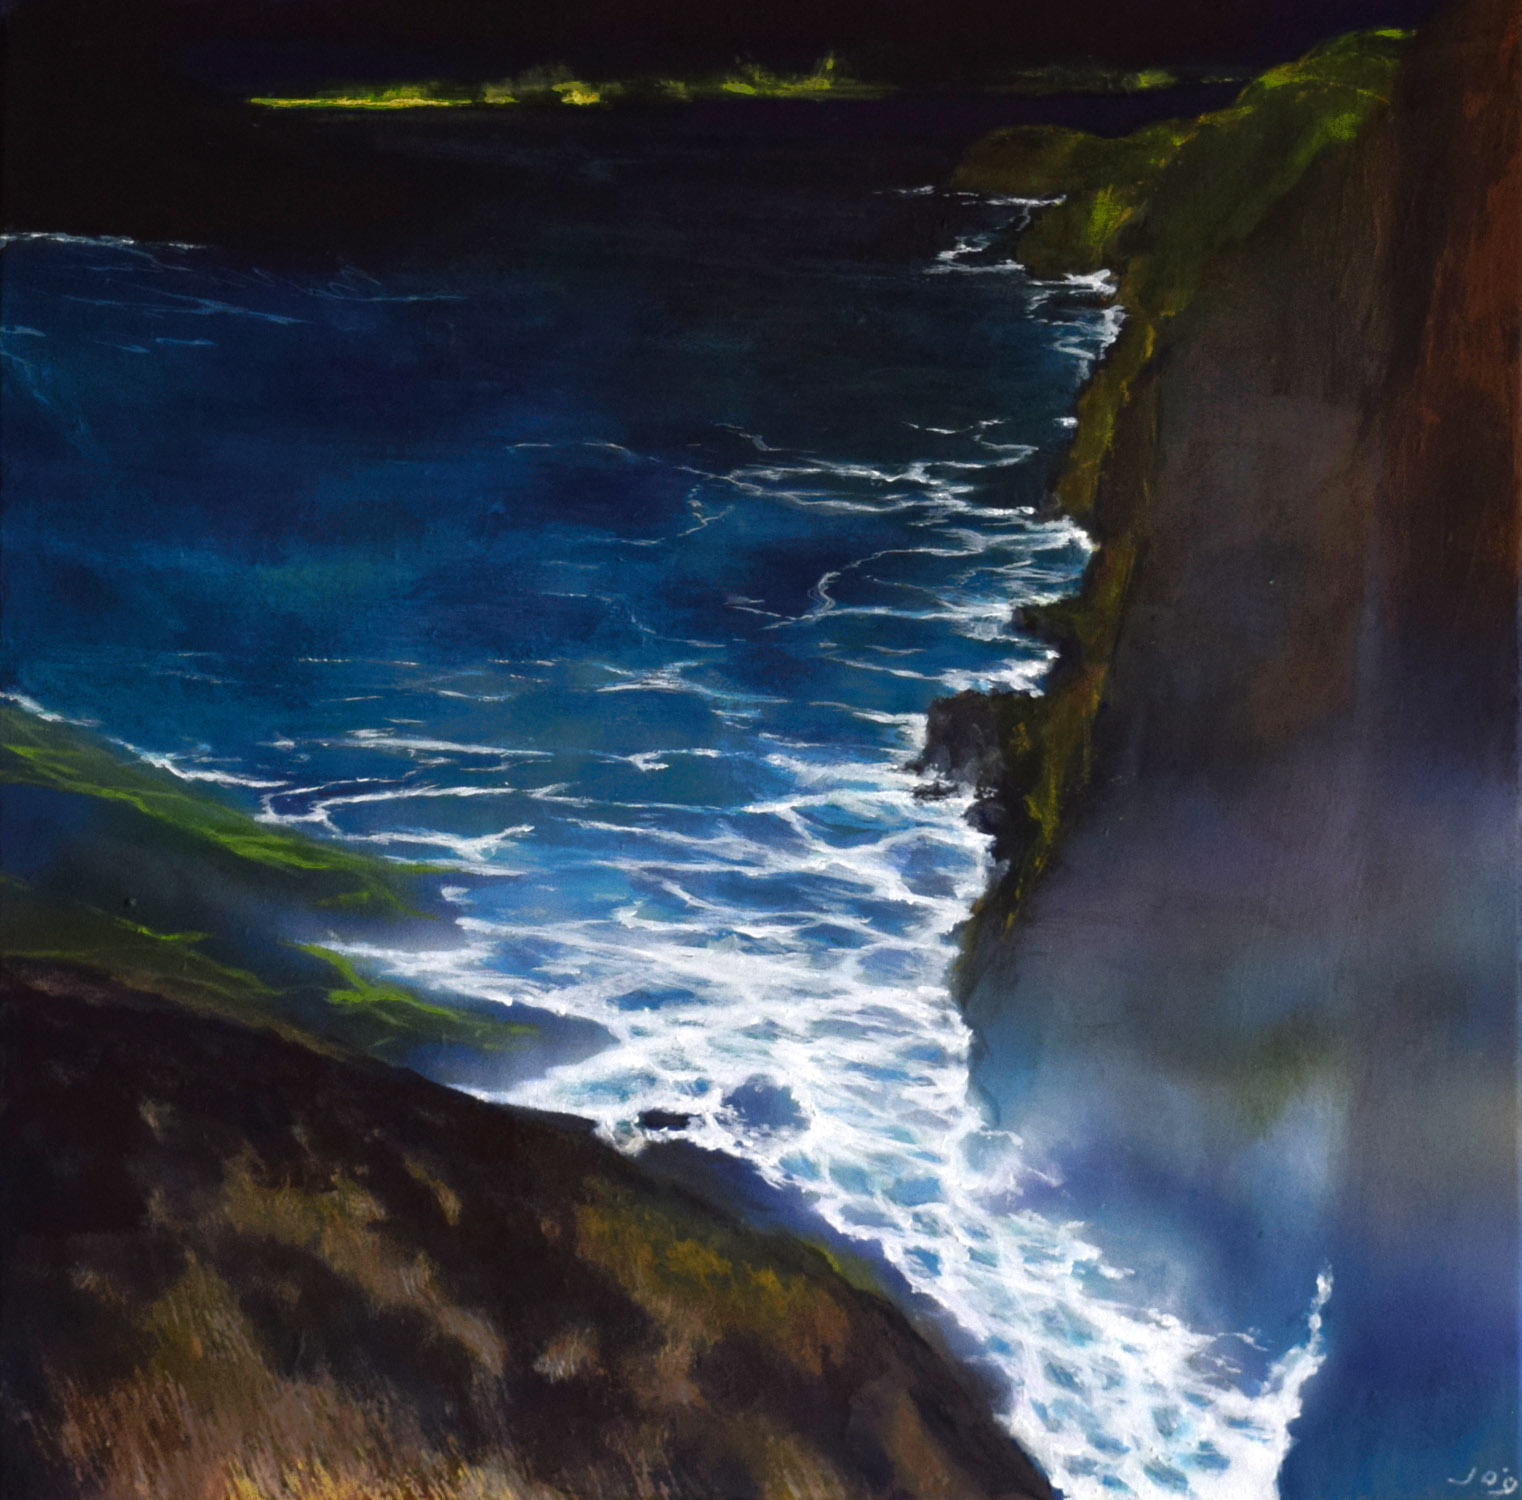 Painting of Irish coast viewed from a cliff. This artwork is called 'The Edge of the Deep Green Sea III' by John O'Grady